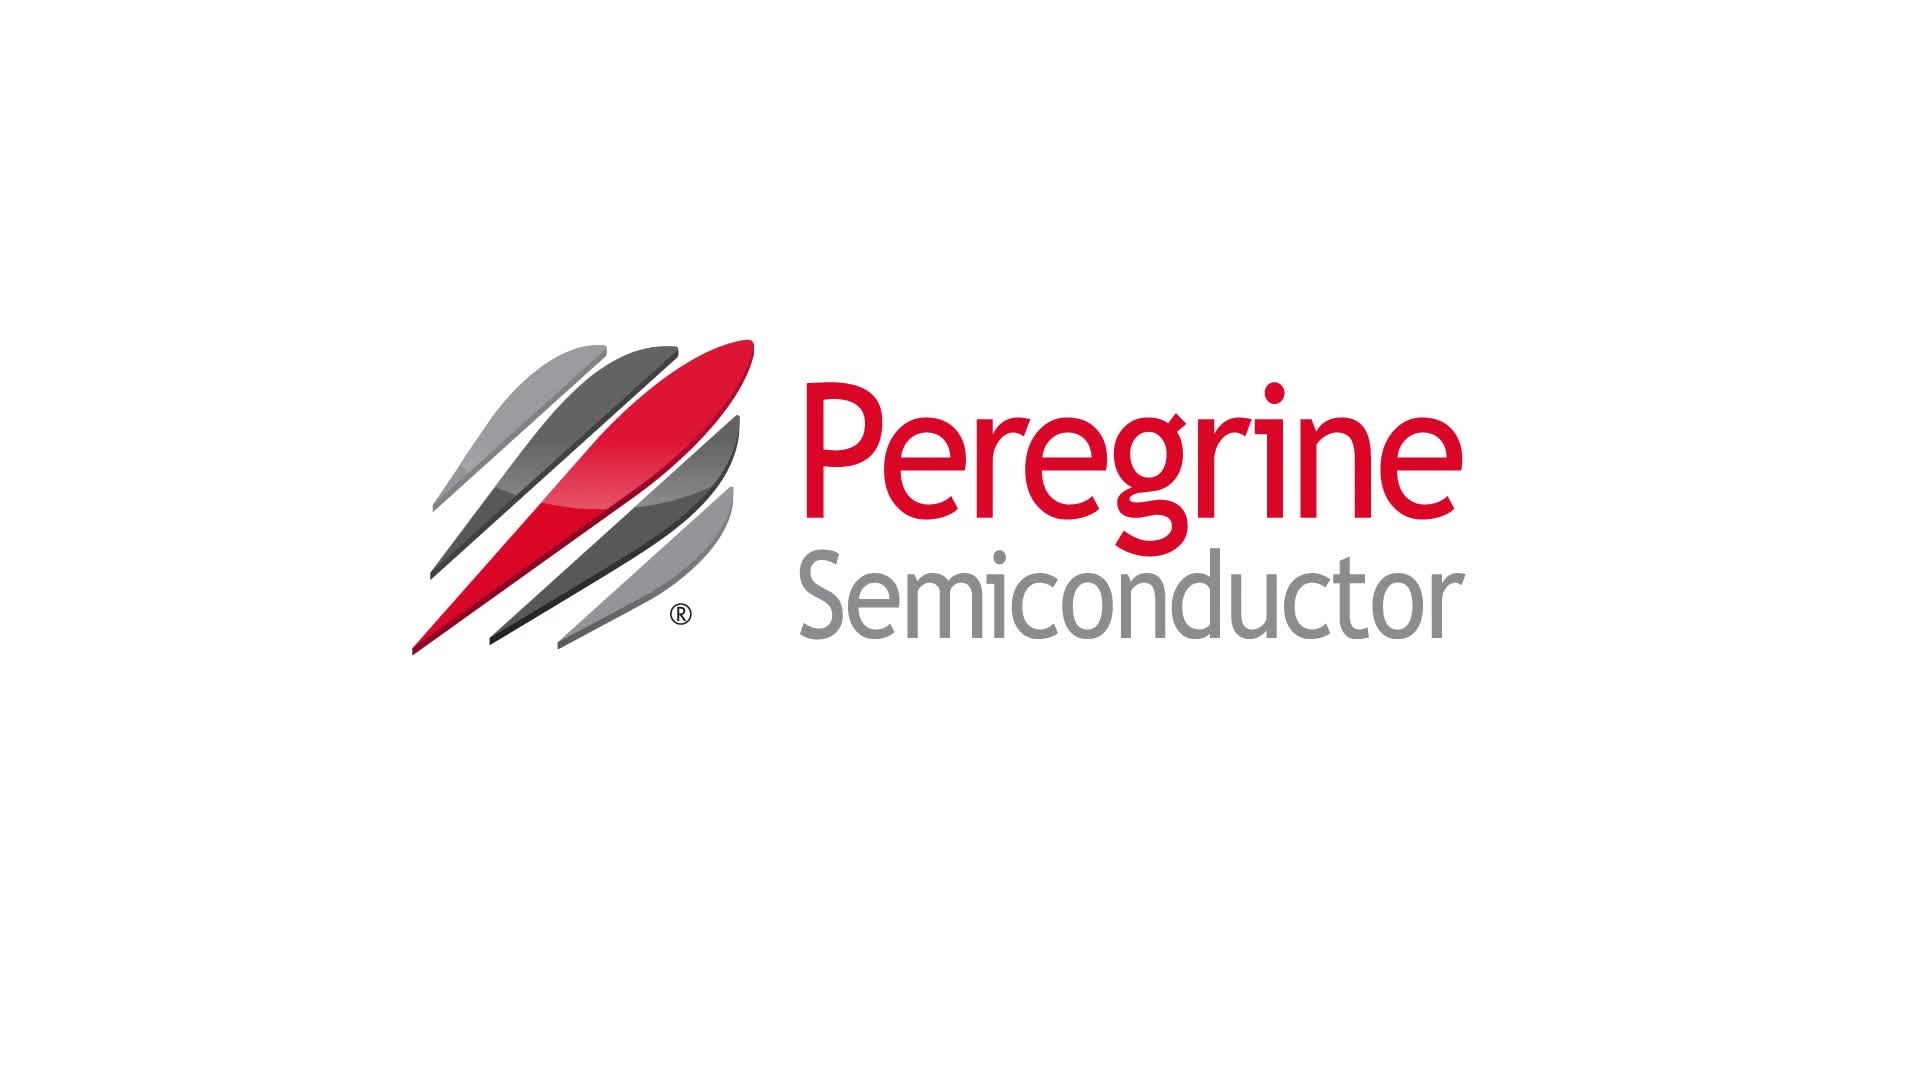 Peregrine's new UltraCMOS® RF switch, the PE42524, is the industry's first RF SOI switch to operate up to 40 GHz.